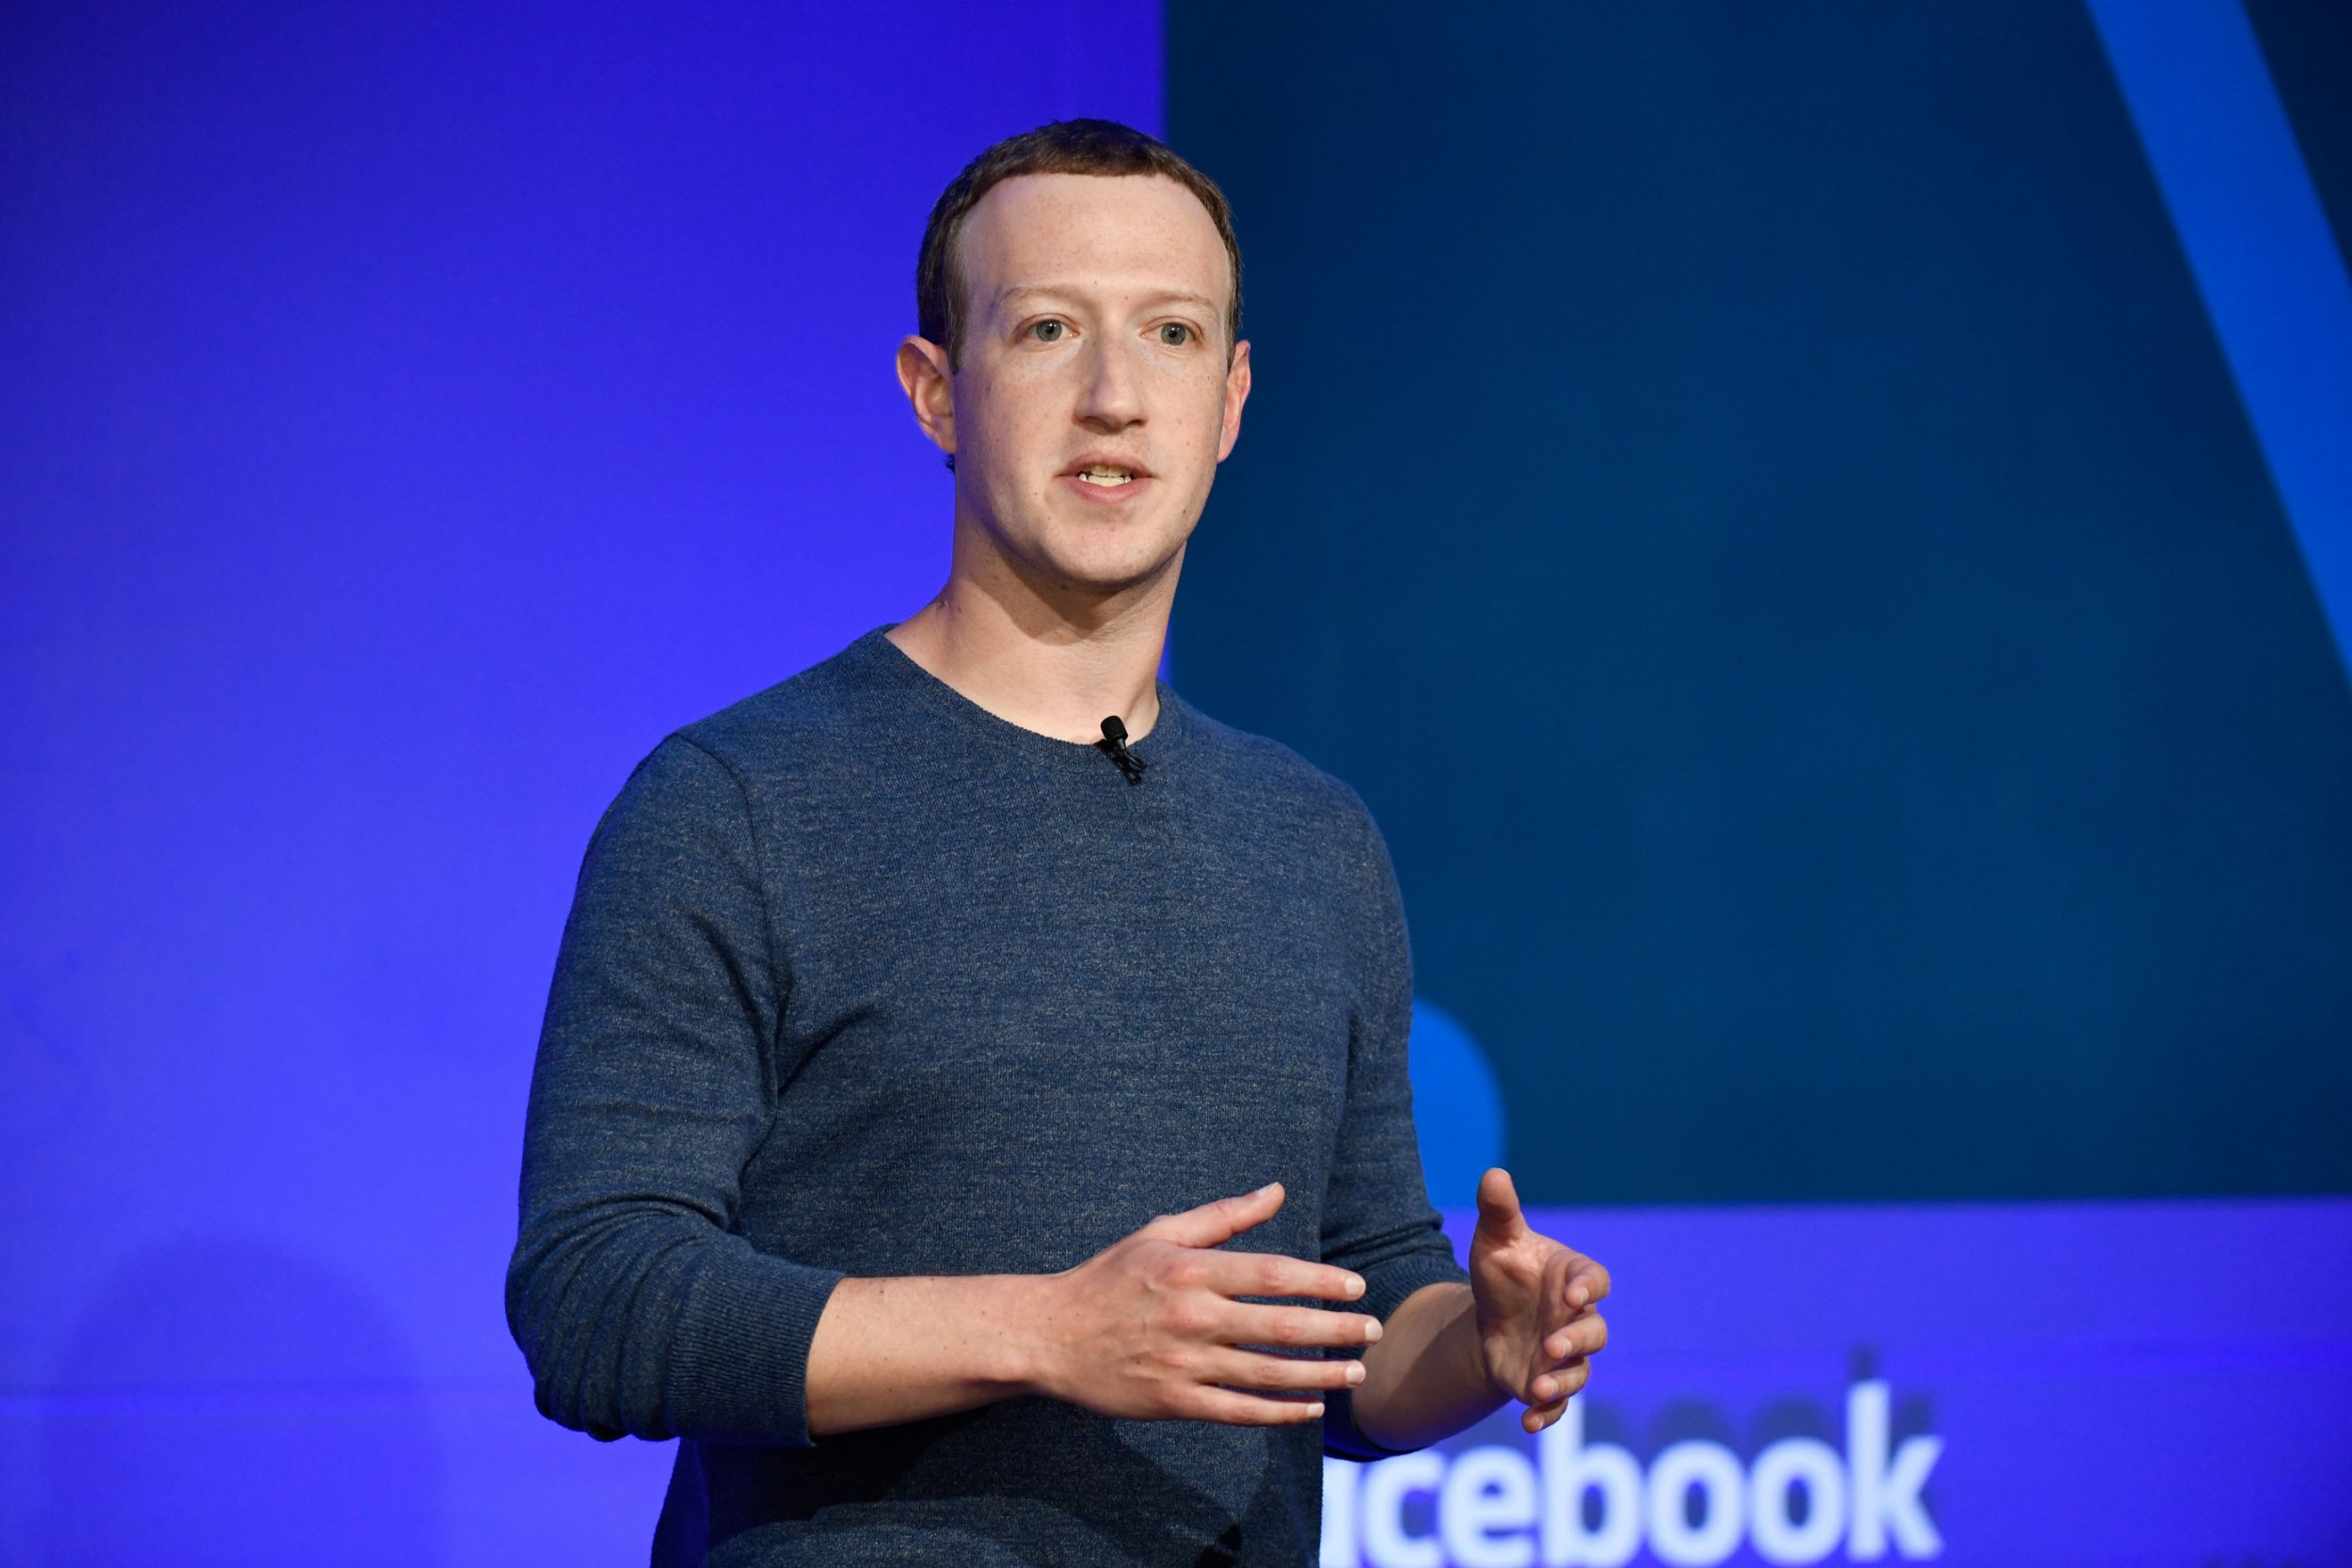 Facebook CEO Mark Zuckerberg speaks during a press discussion in Paris on May 23, 2018. (Photo by BERTRAND GUAY / AFP) (Photo credit should review BERTRAND GUAY/AFP/Getty Images)